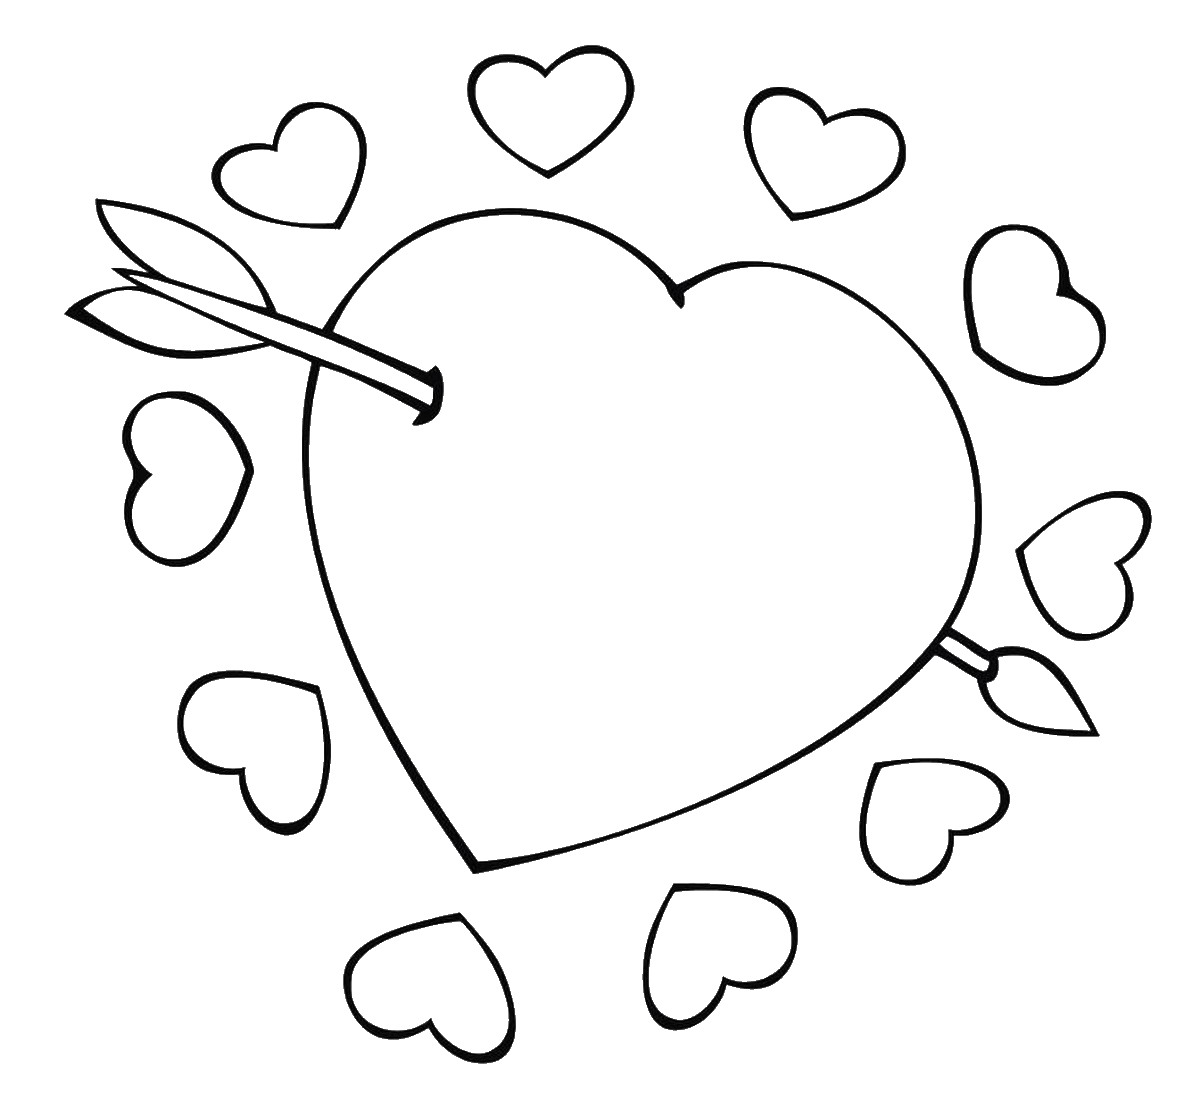 Heart Images Coloring Pages At Getdrawings Com Free For Personal